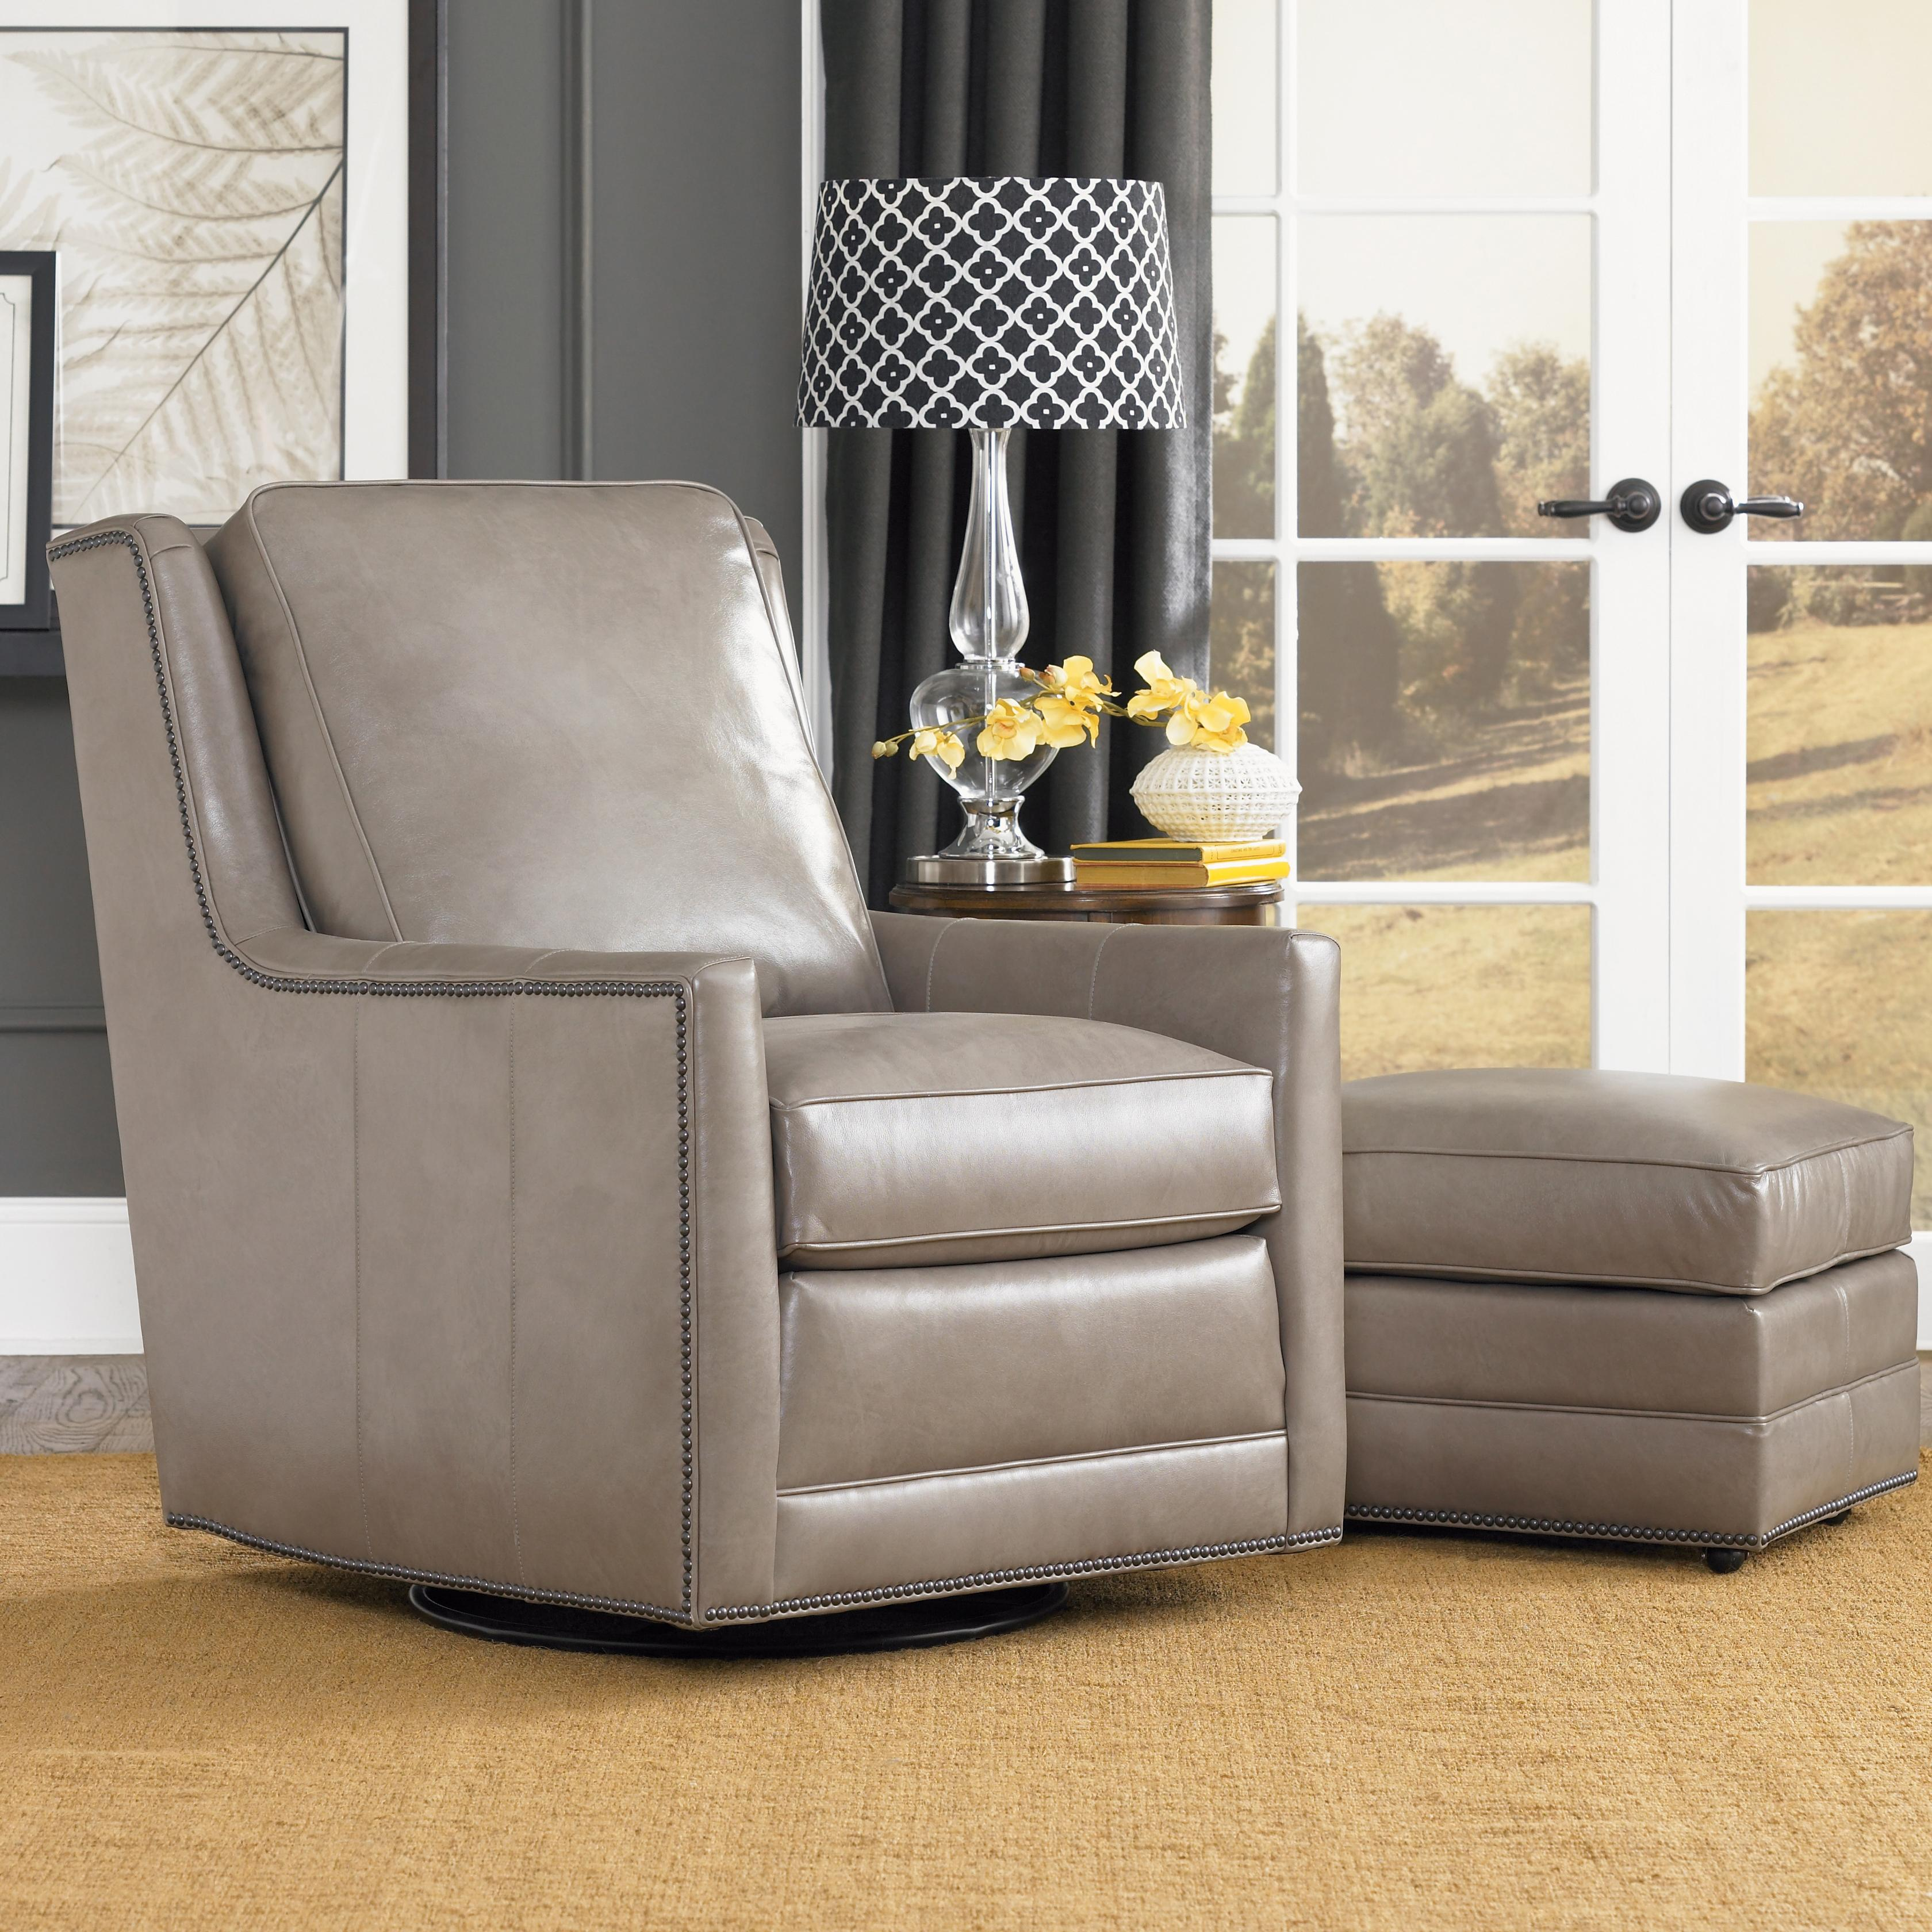 Accent Chairs and Ottomans SB Swivel Chair and Ottoman Set by Smith Brothers at Sprintz Furniture